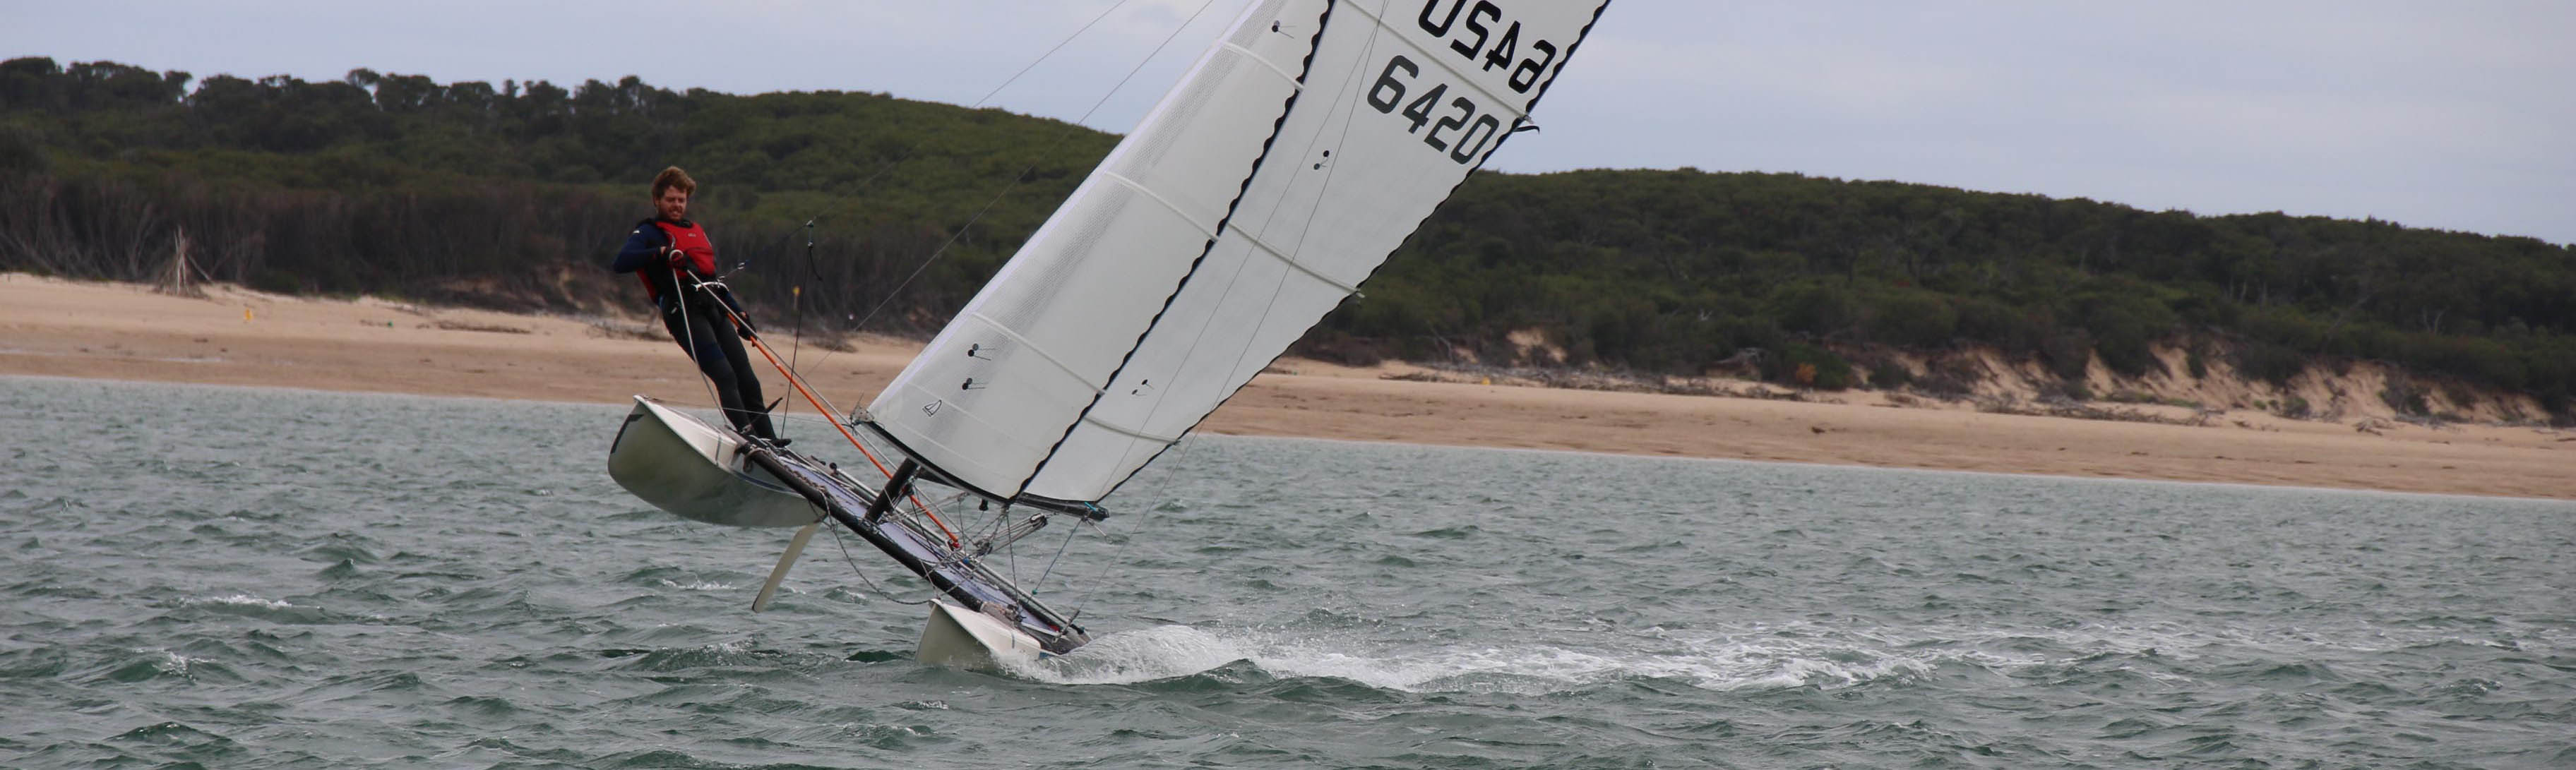 Fast exciting sailing